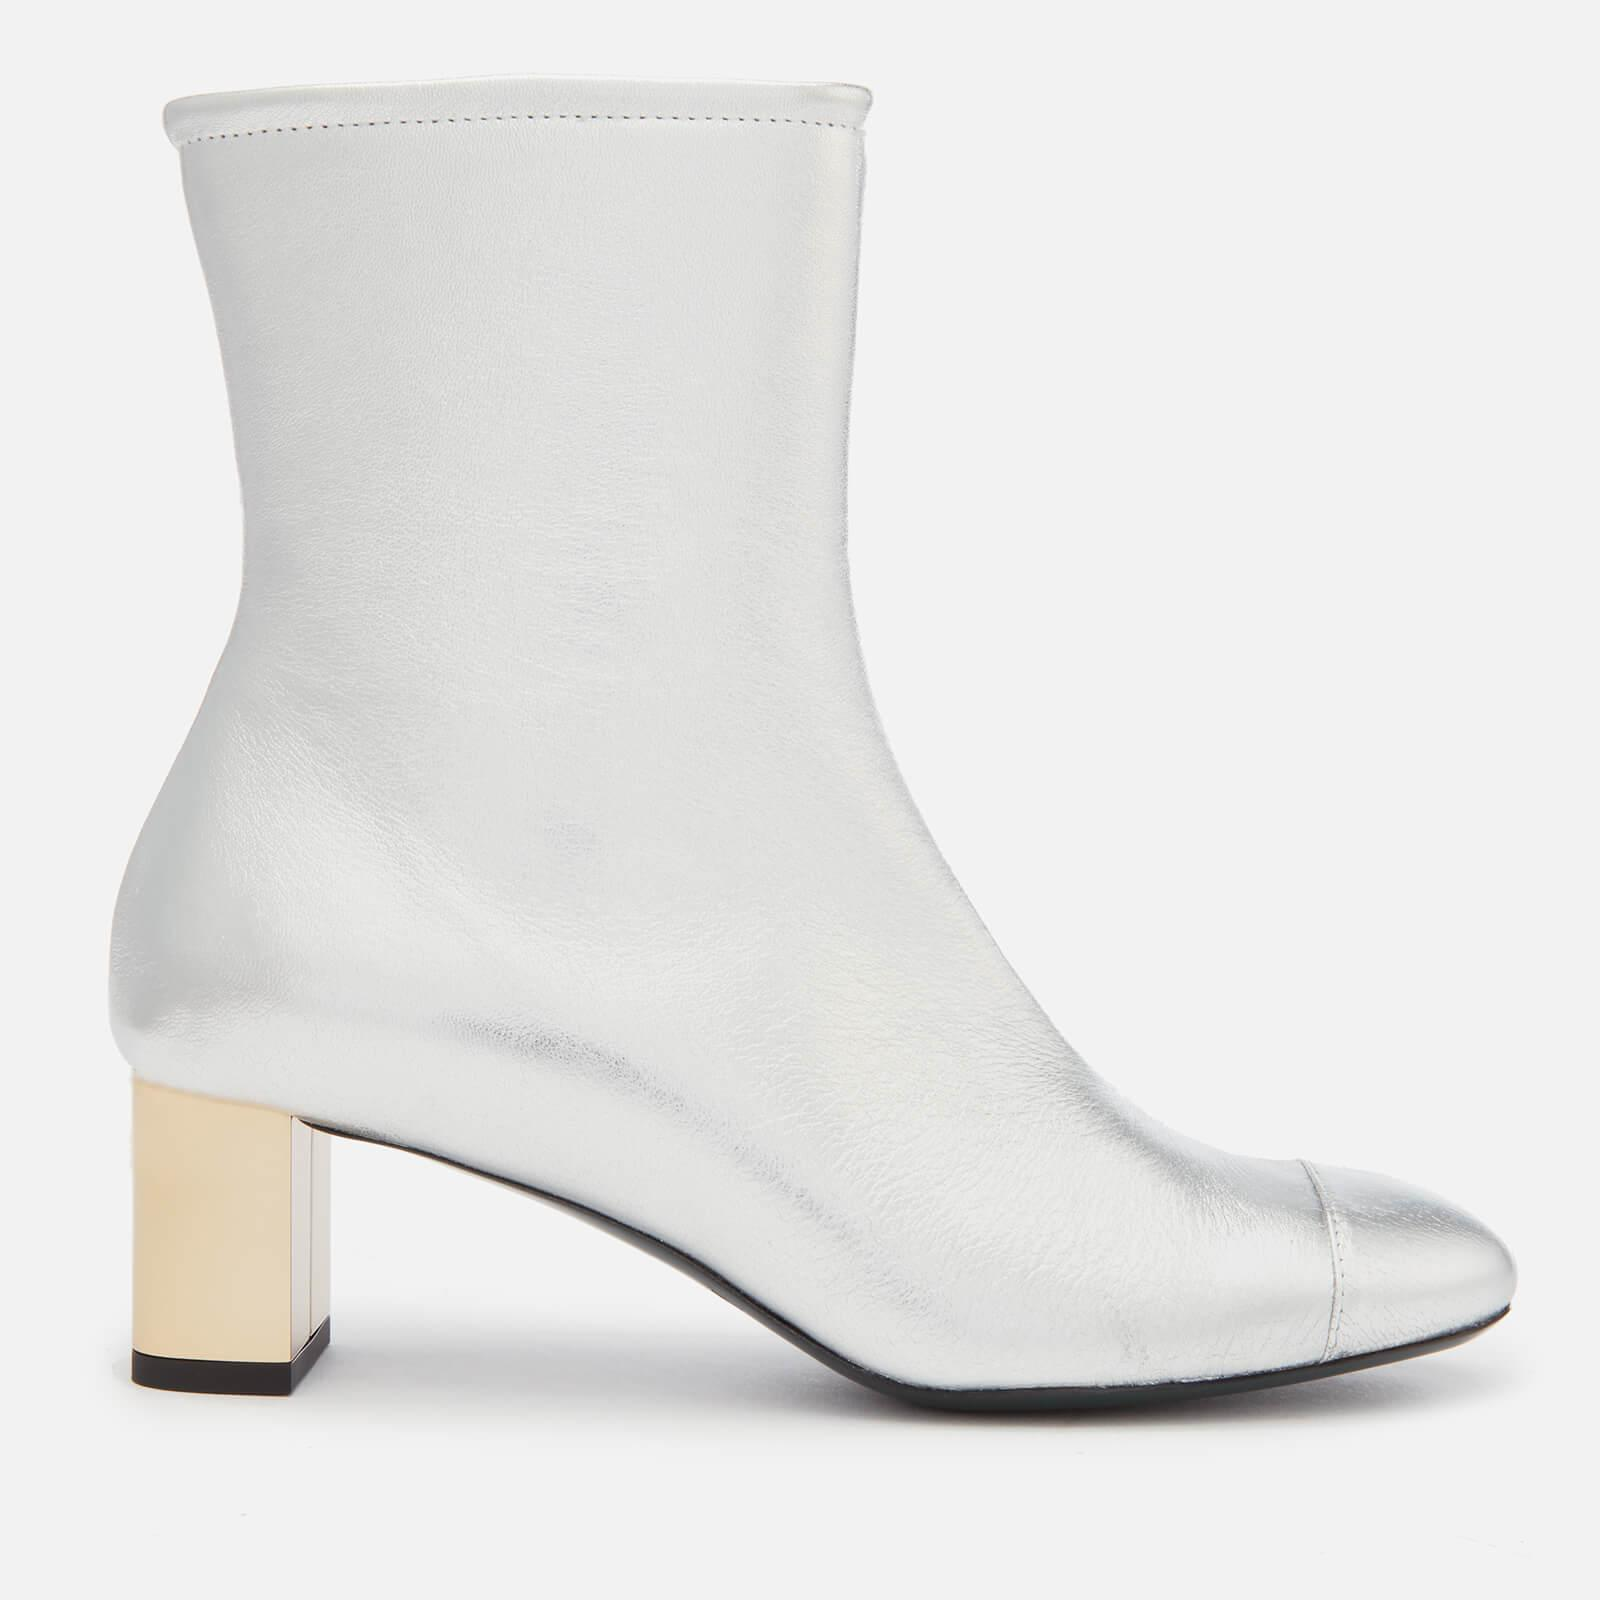 0658c6a6ffd Mulberry Leather Heeled Ankle Boots in Metallic - Lyst